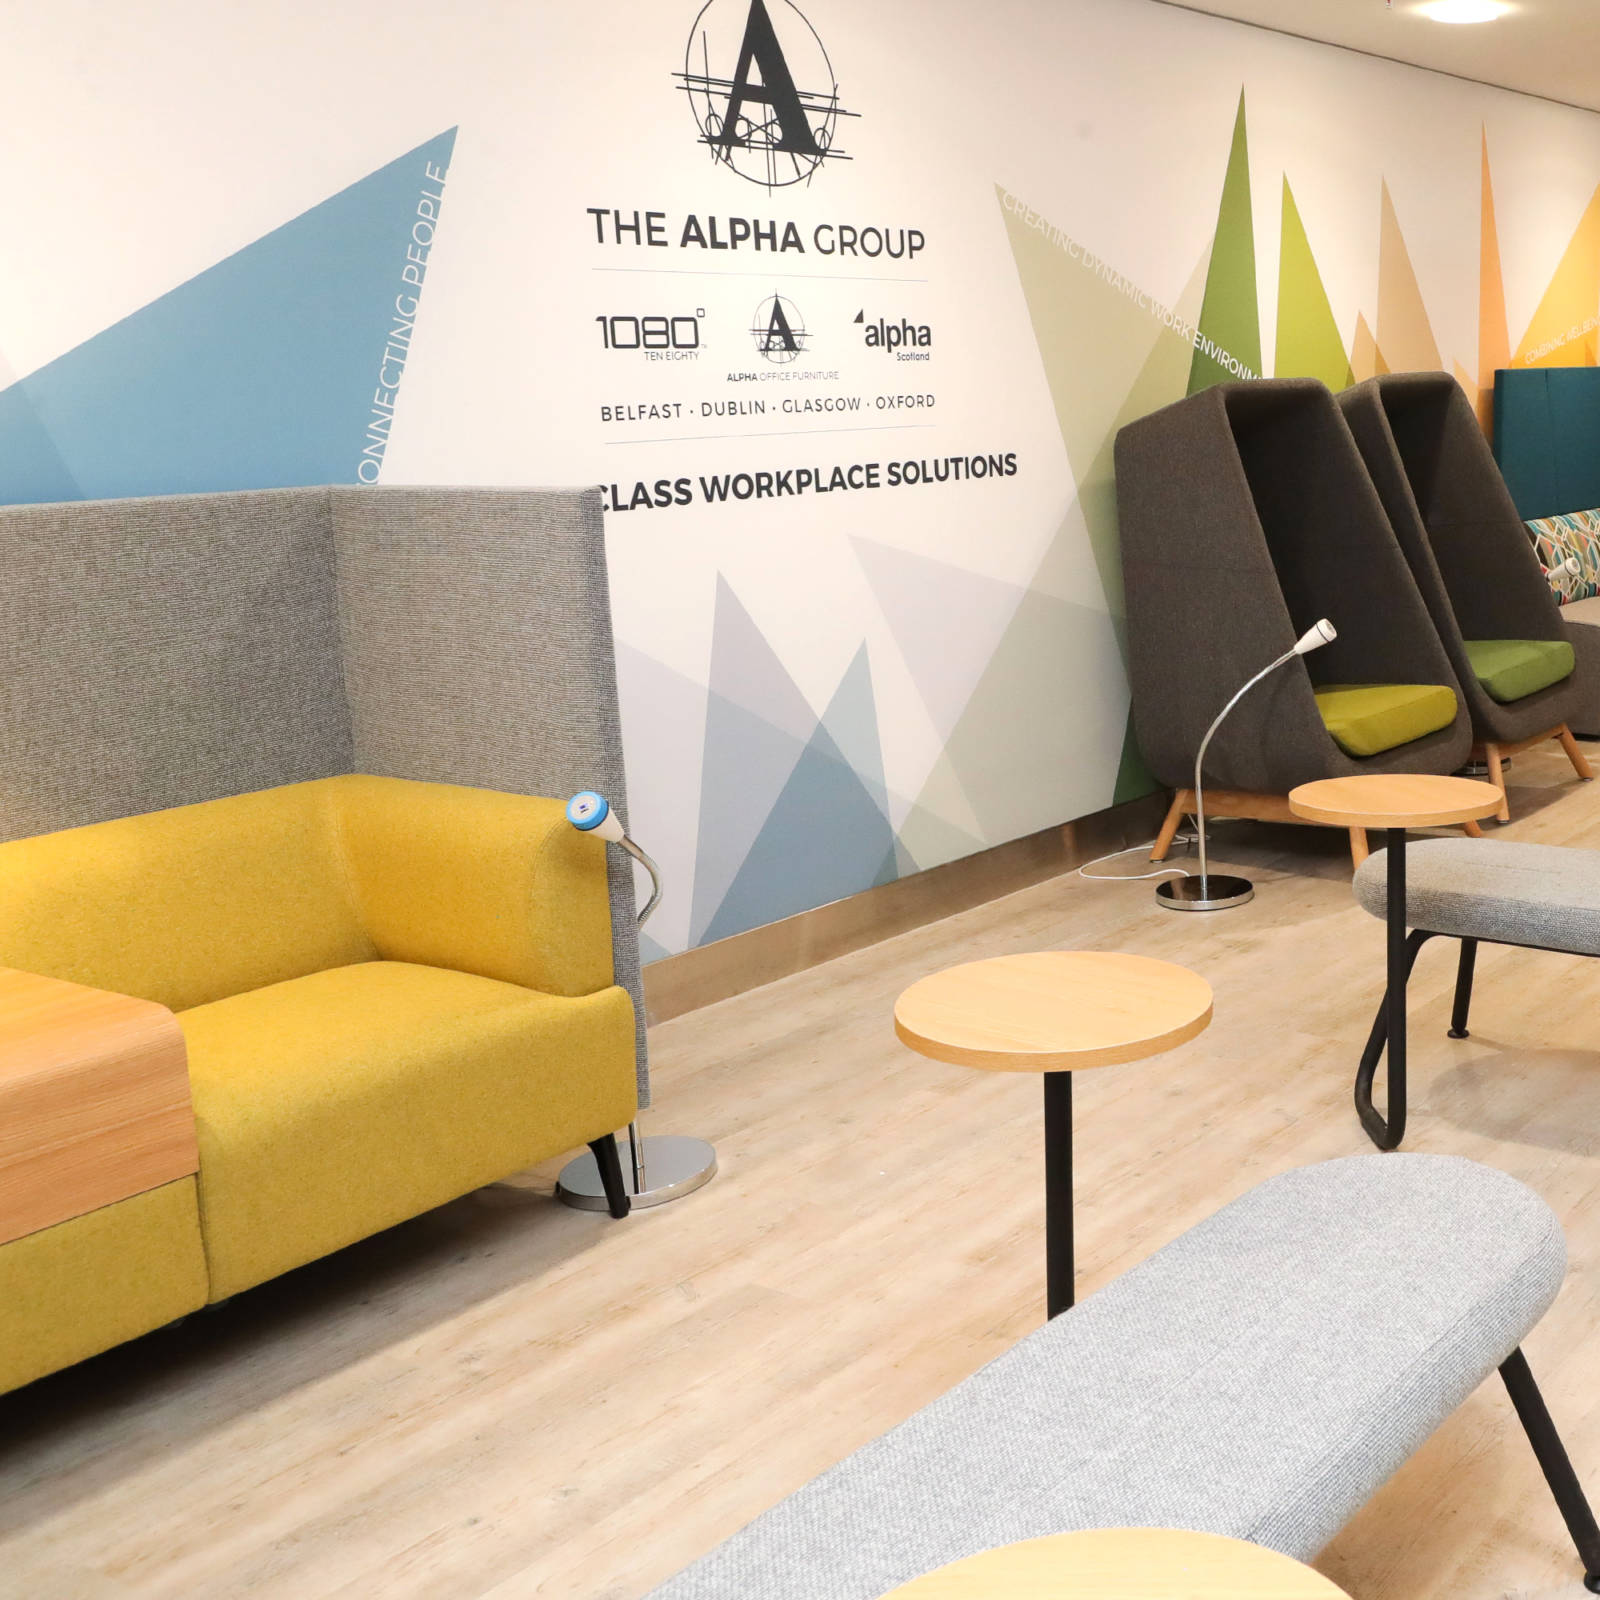 soft seating at belfast airport waiting room